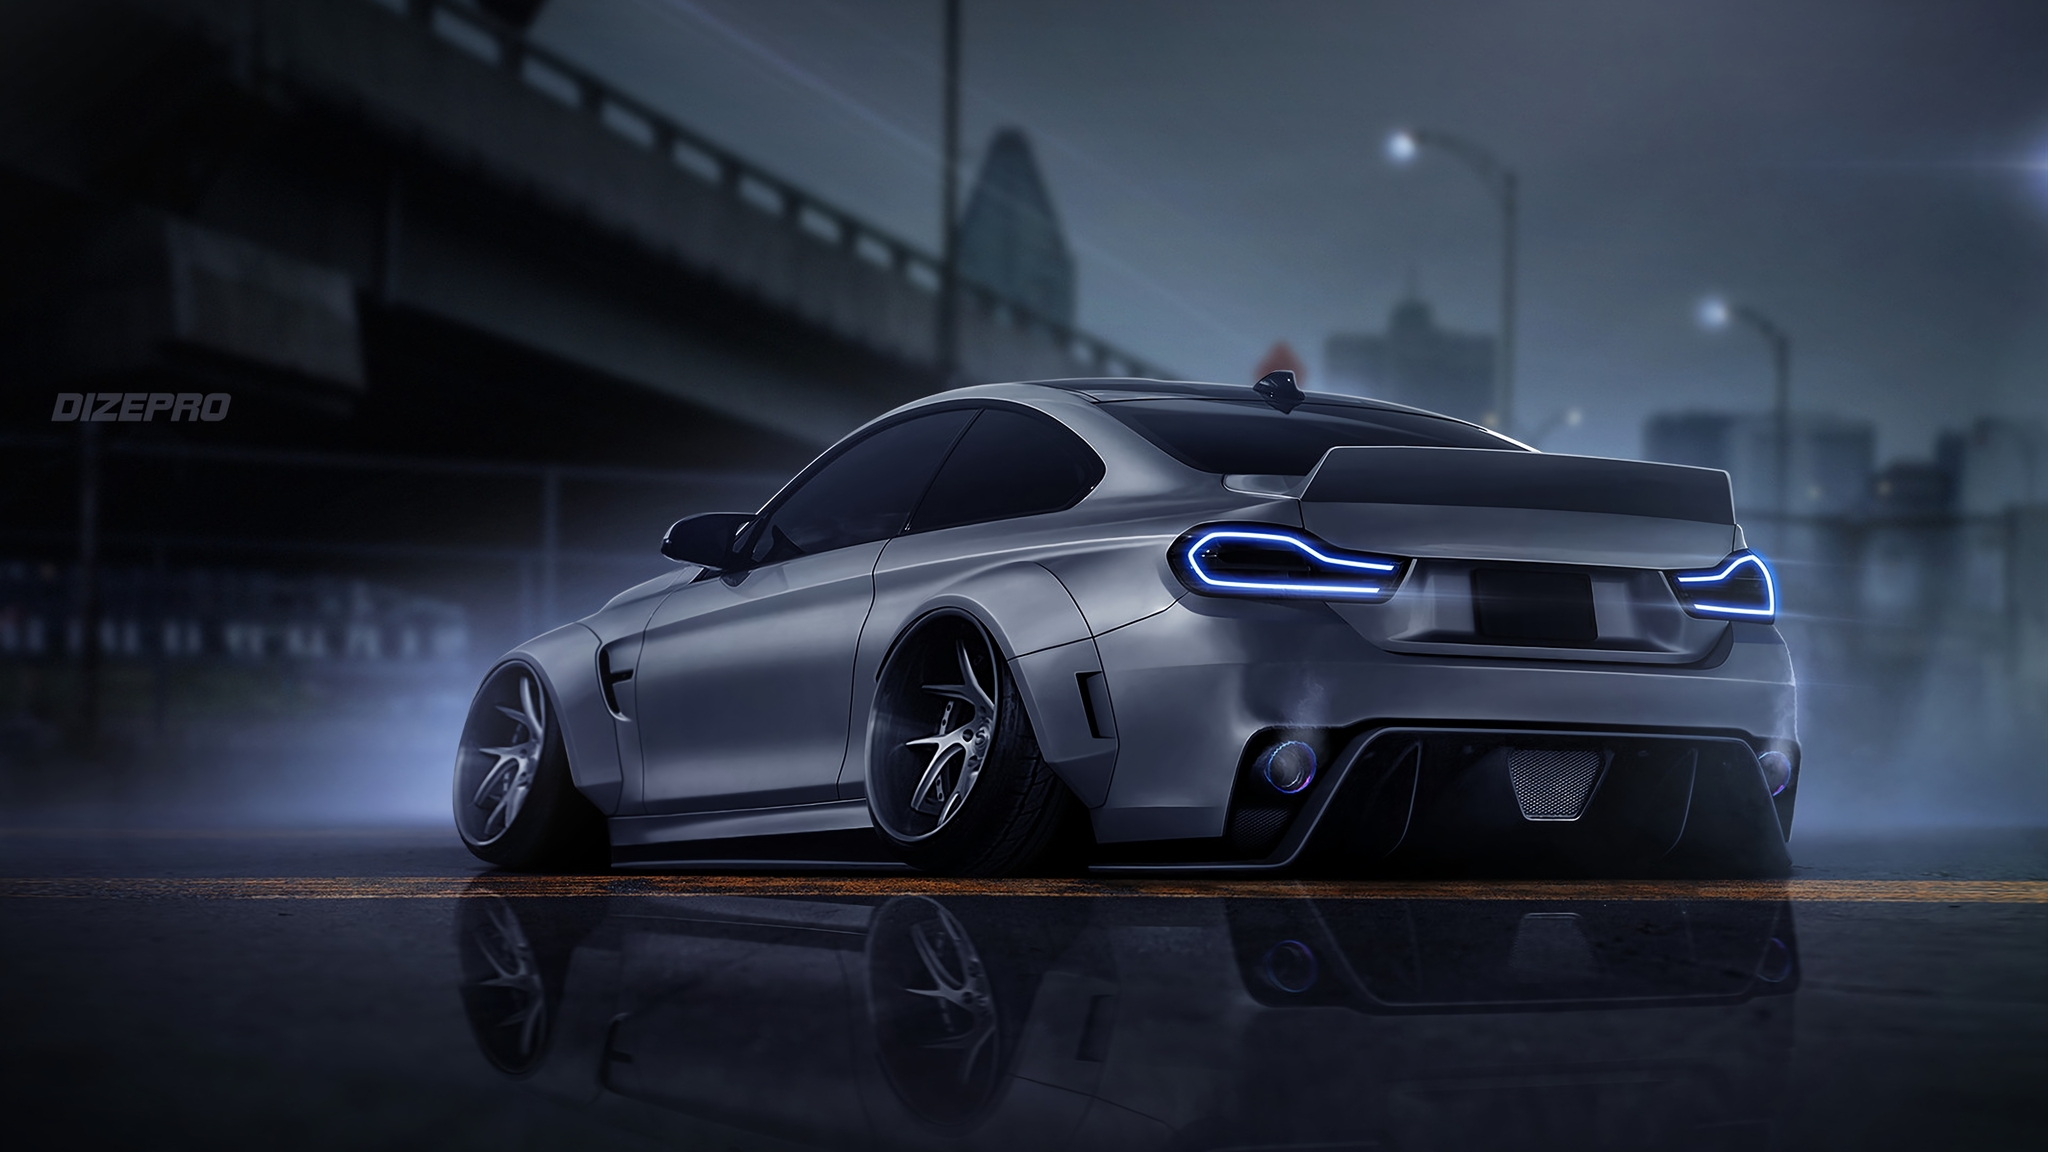 2048x1152 Bmw F82 Dark Side Car Digital Art 4k 2048x1152 Resolution Hd 4k Wallpapers Images Backgrounds Photos And Pictures